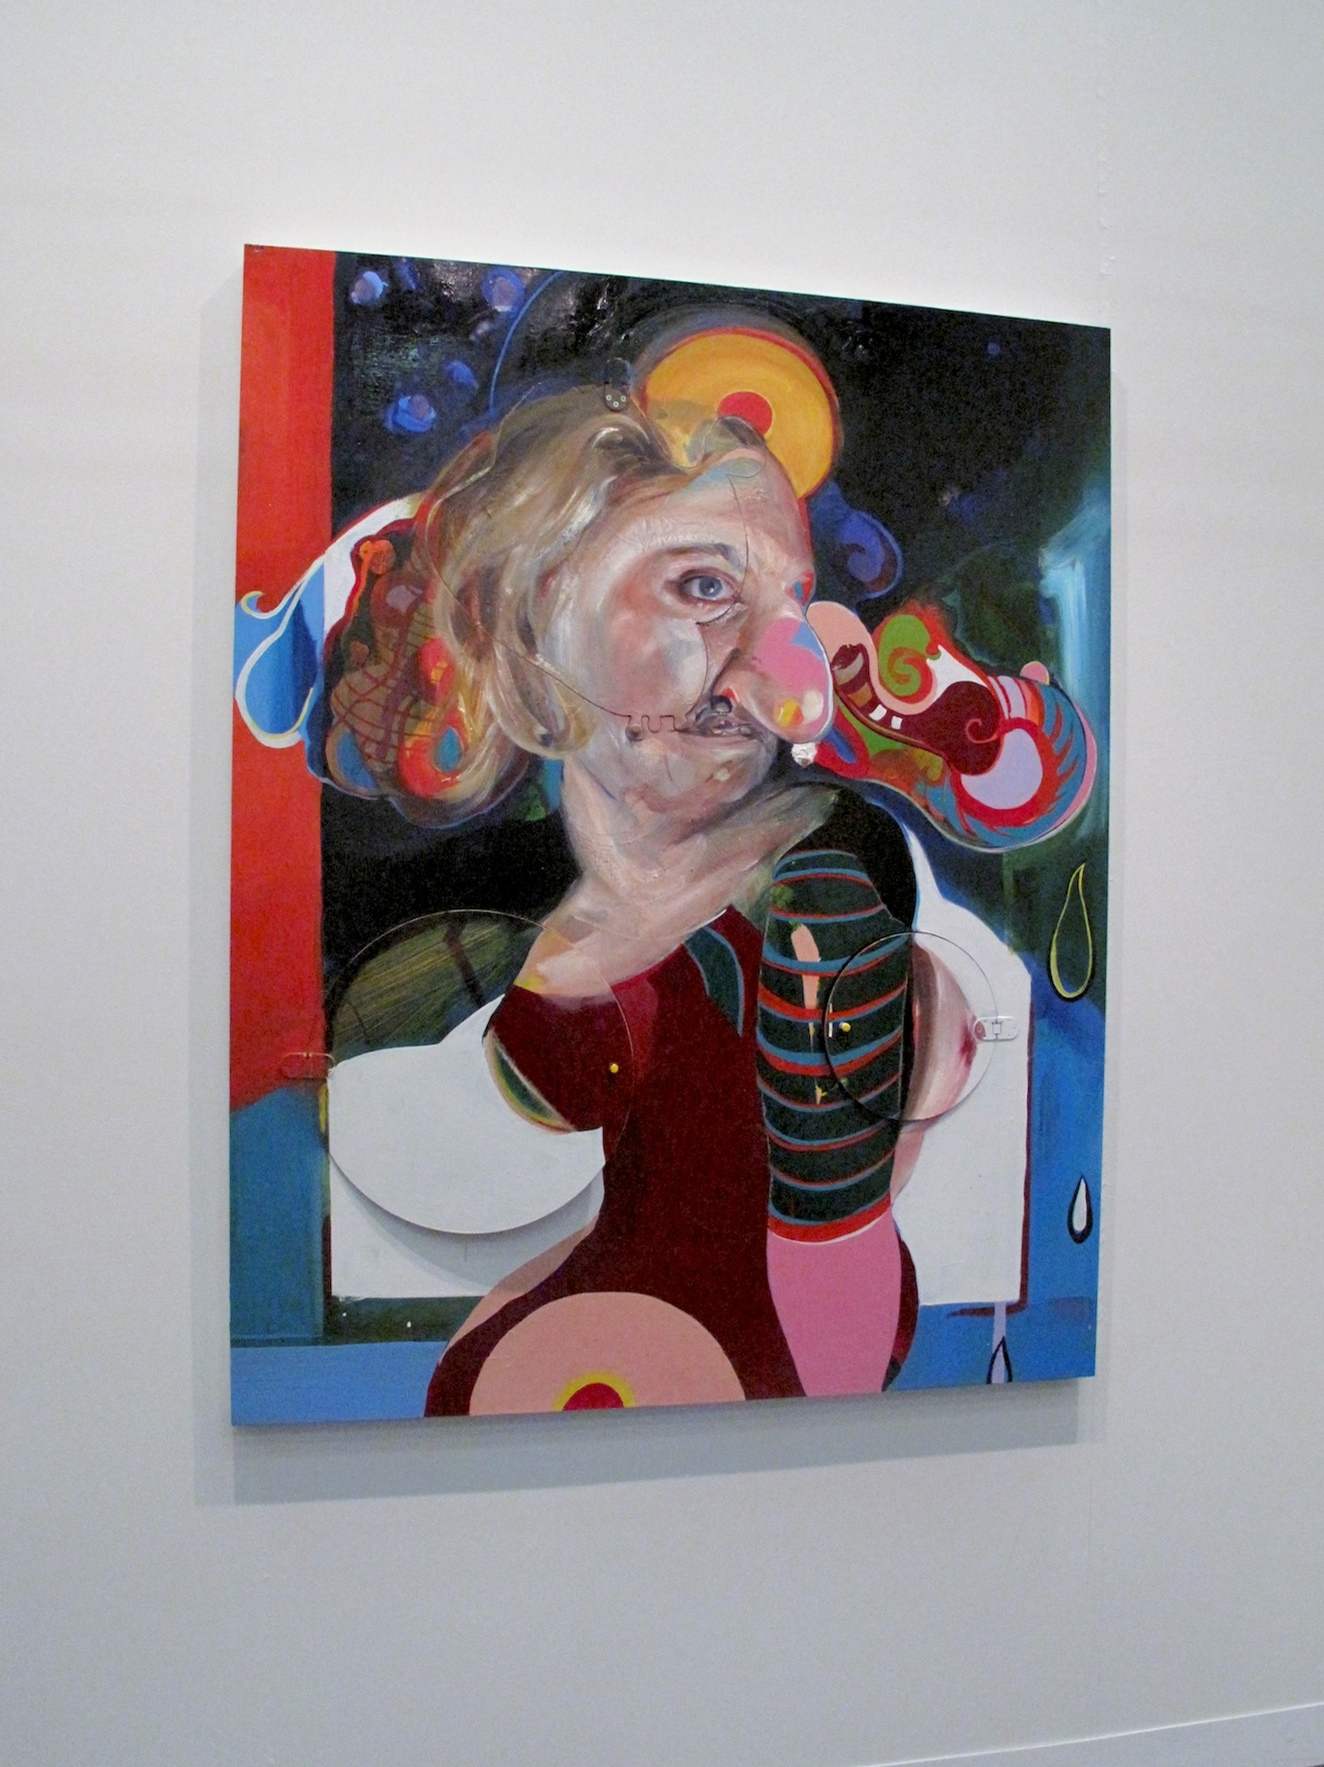 Acme Gallery, Los Angeles, Natalie Frank, oil painting on mixed media surface The Armory Show, New York, 2014, Pier 94